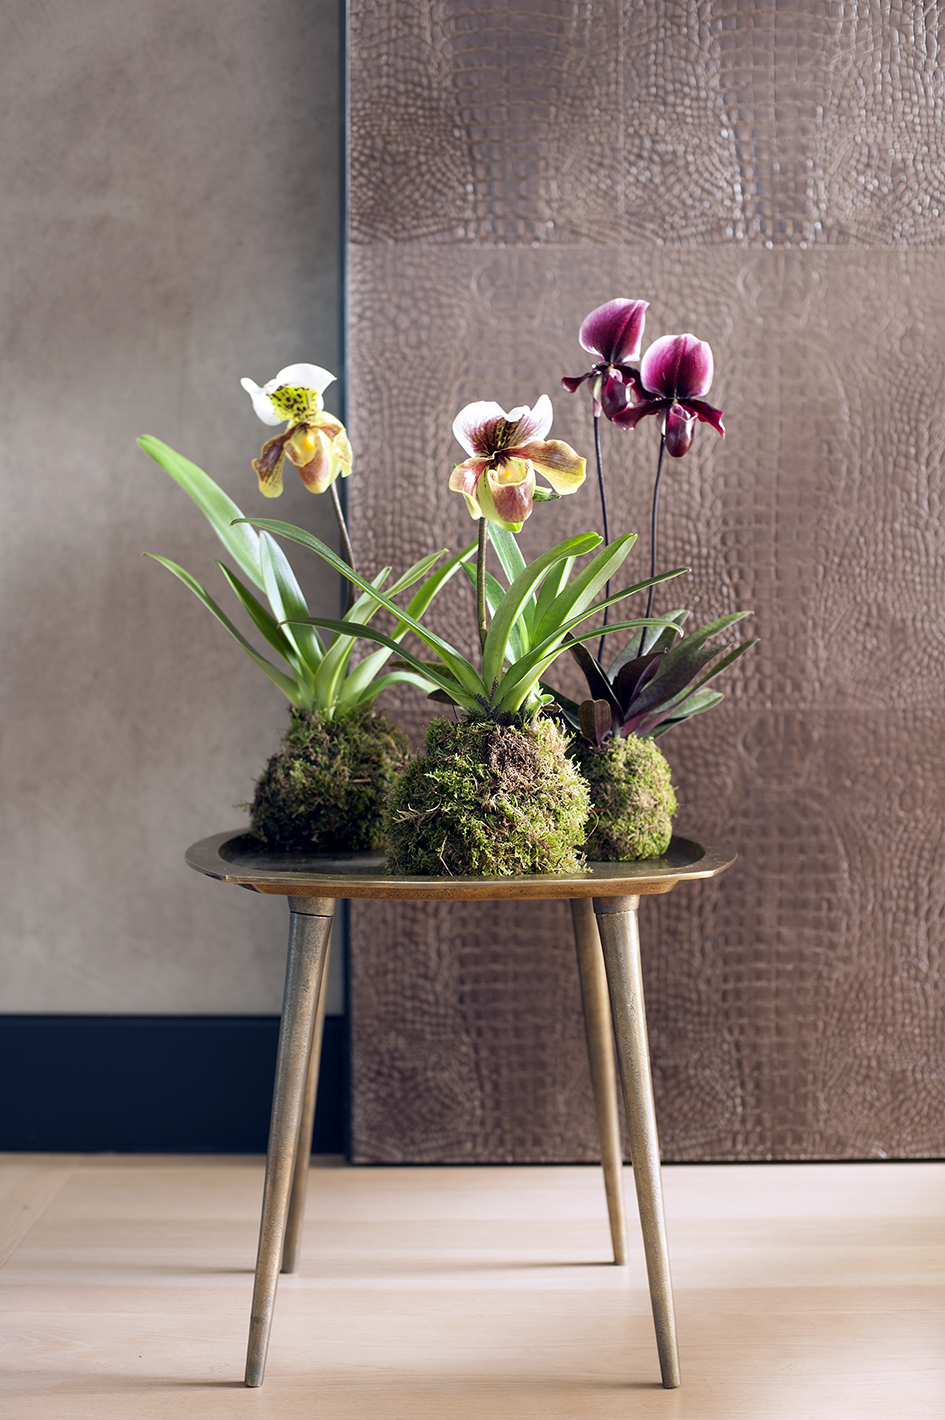 diy kokedama avec des orchid es d exception ma plante mon bonheur. Black Bedroom Furniture Sets. Home Design Ideas